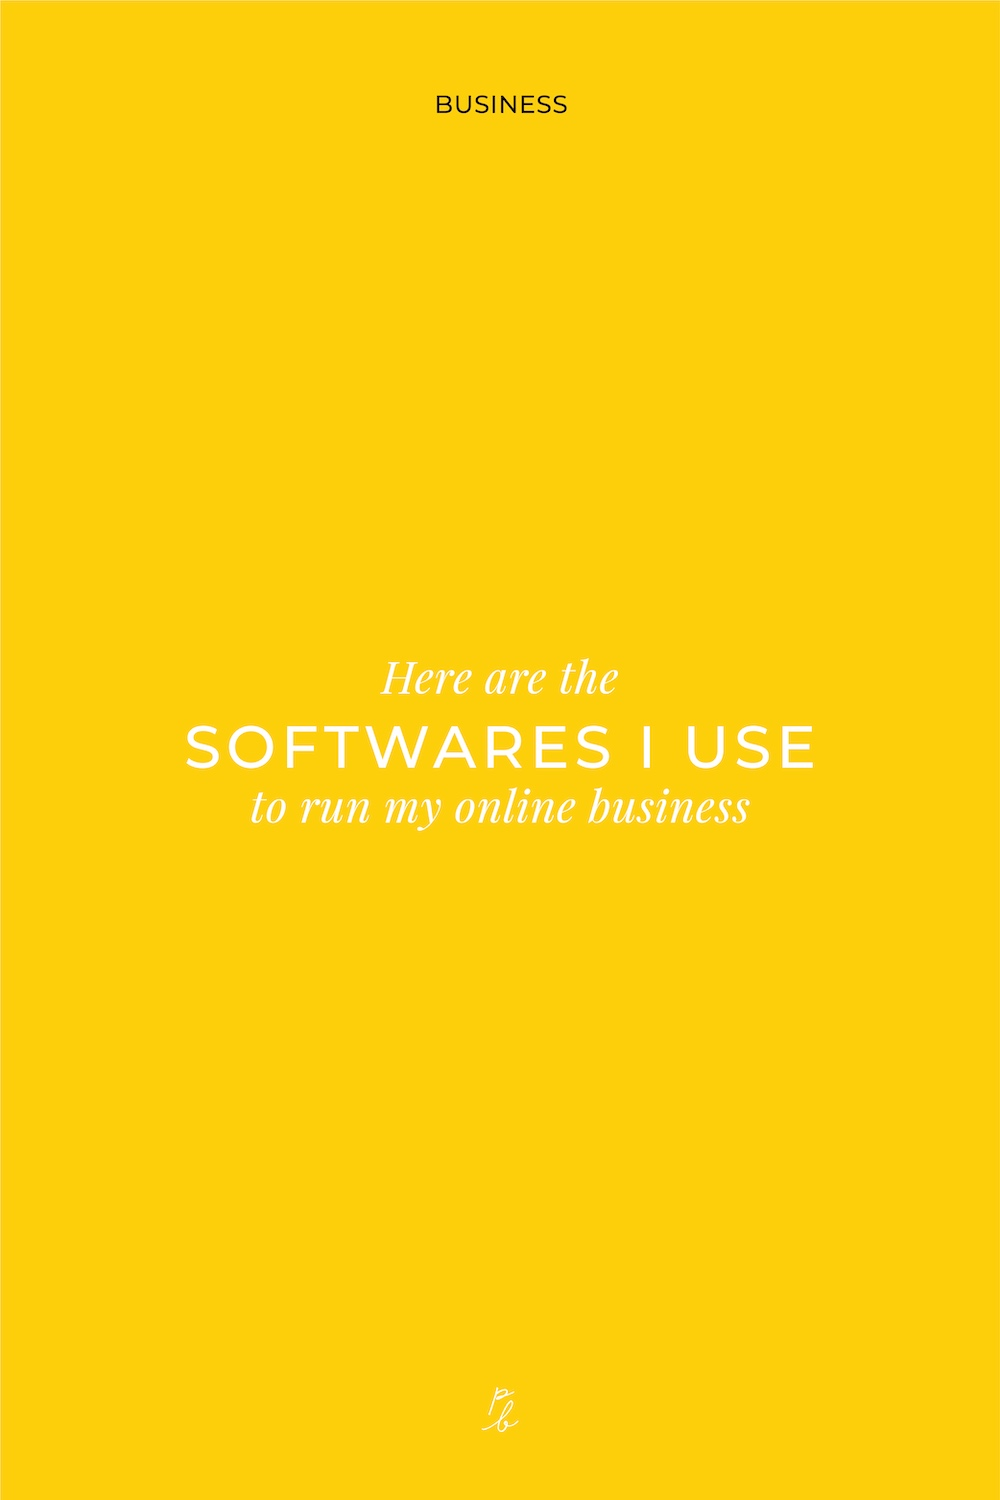 5-Here are the softwares I use to run my online business.jpg